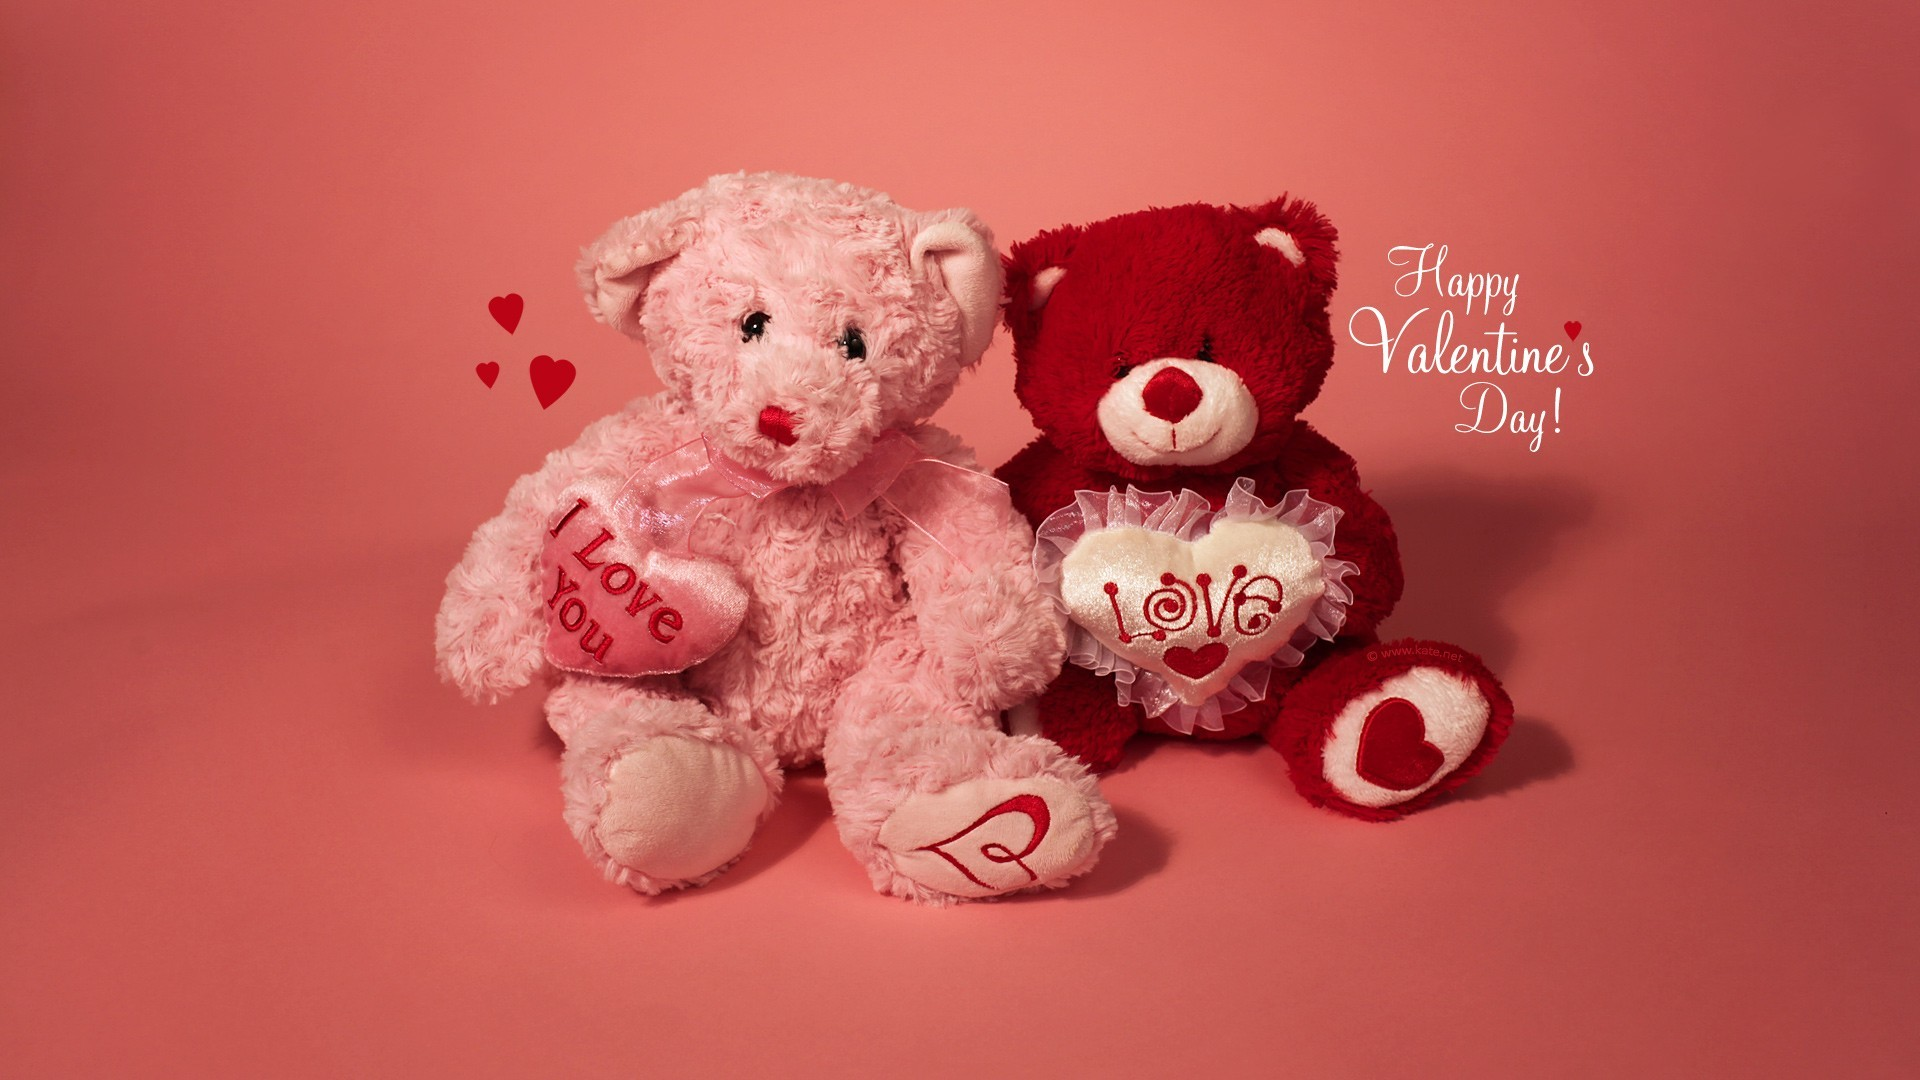 1920x1080 Happy Valentines Day Cute Pictures HD Wallpaper of Love .